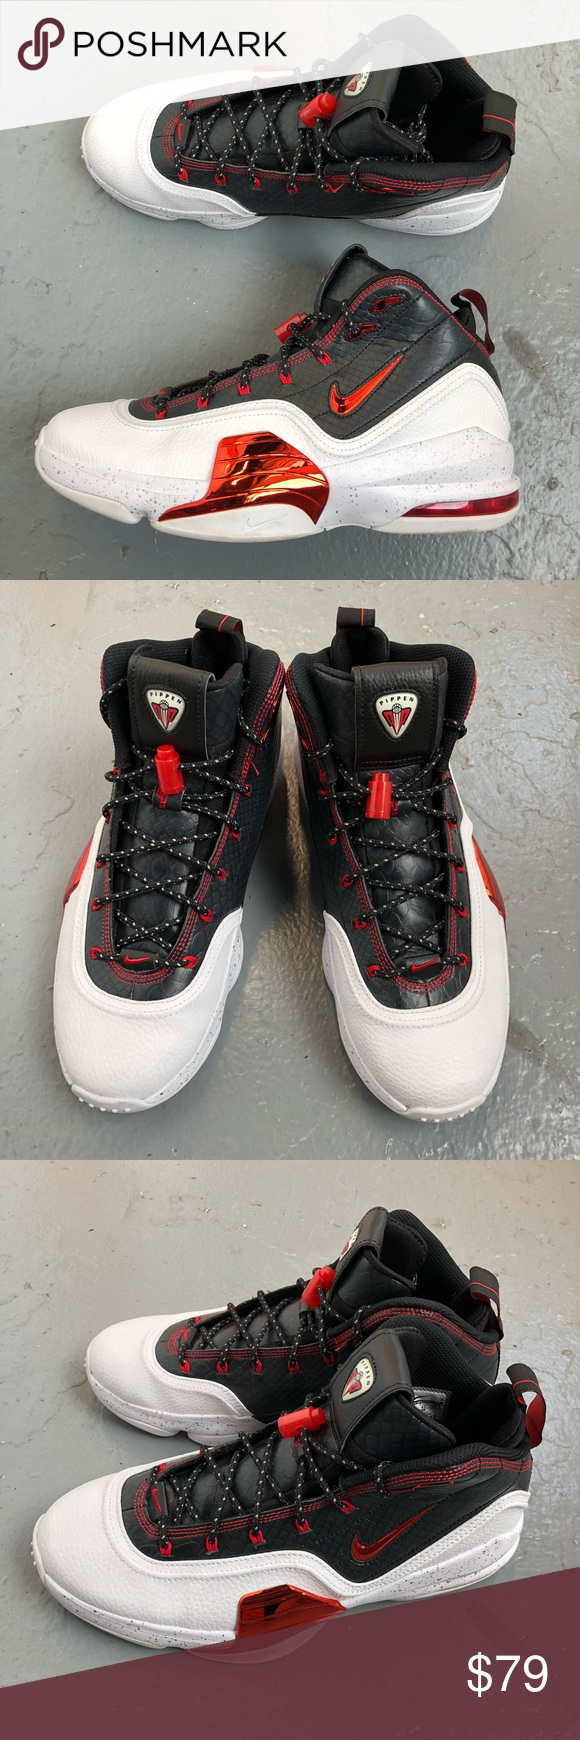 e6e35947fdca Air Pippen 6 UNIVERSITY RED WHIT... RELEASED 10 27 14